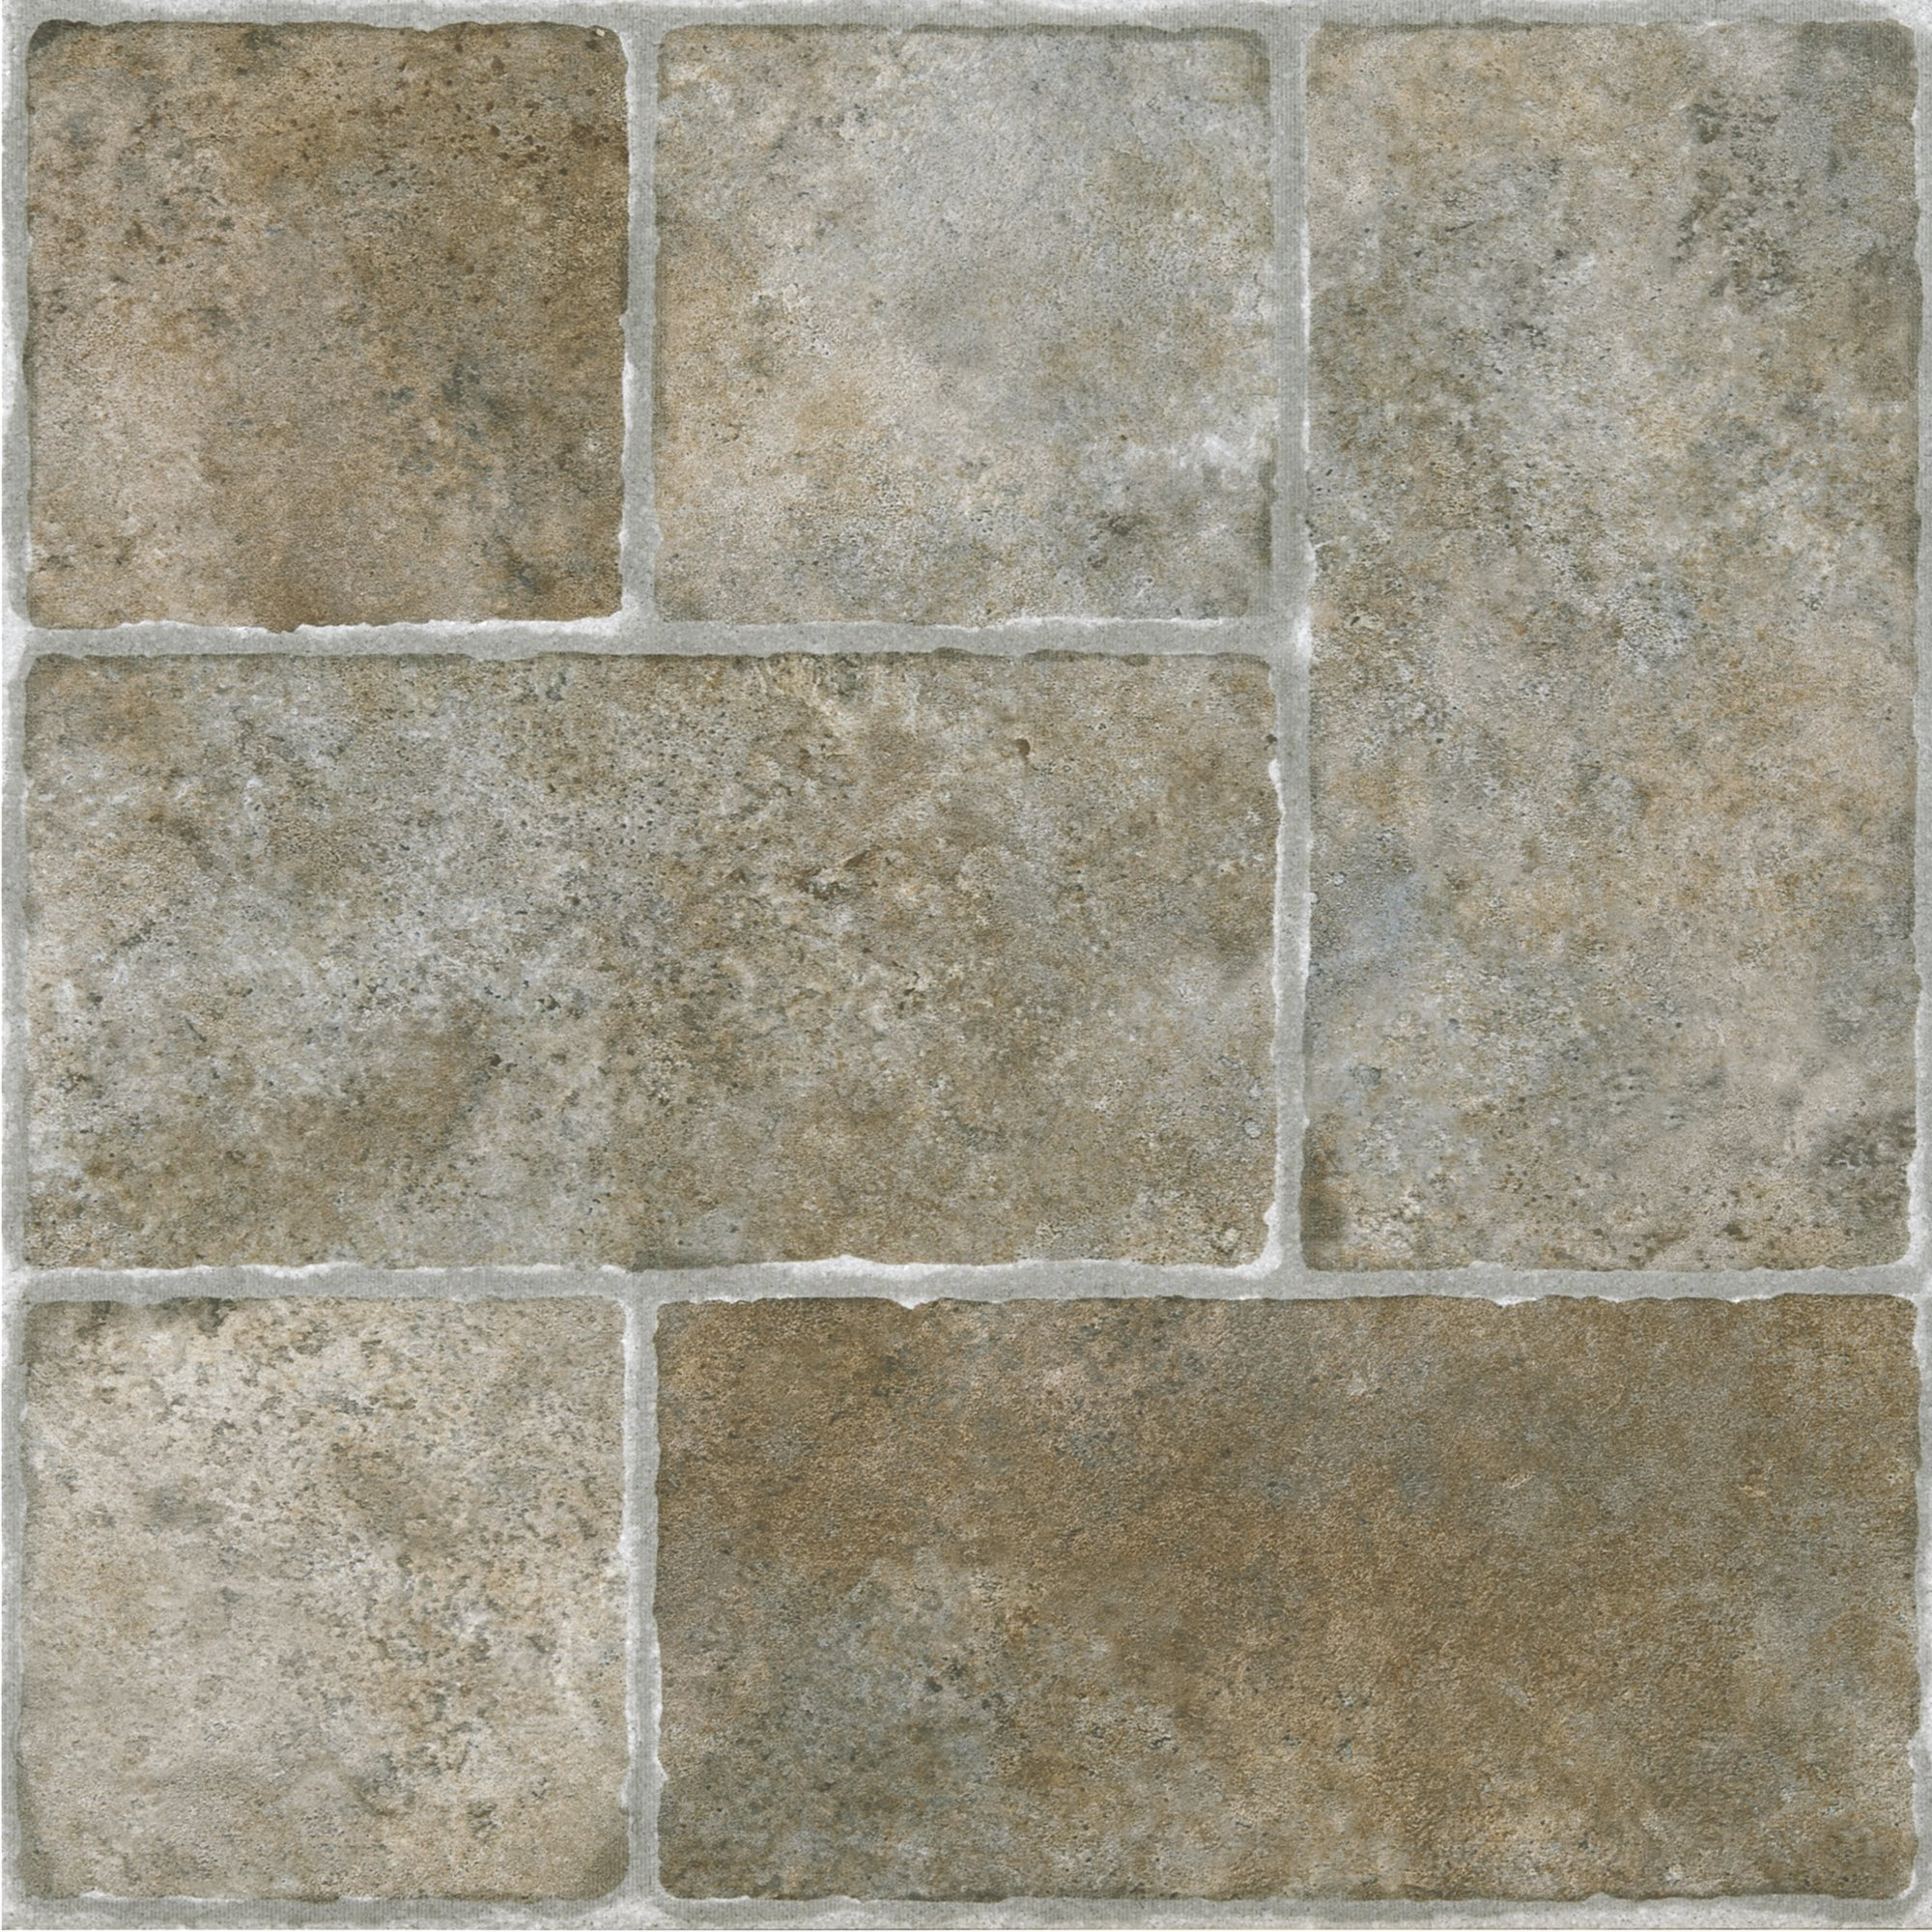 Achig|#Achim Home Furnishings FTVGM33720 Achim Home Furnishings Nexus Quartose Granite,12 Inch x 12 Inch, Self Adhesive Vinyl Floor Tile #337, 20 Tiles,